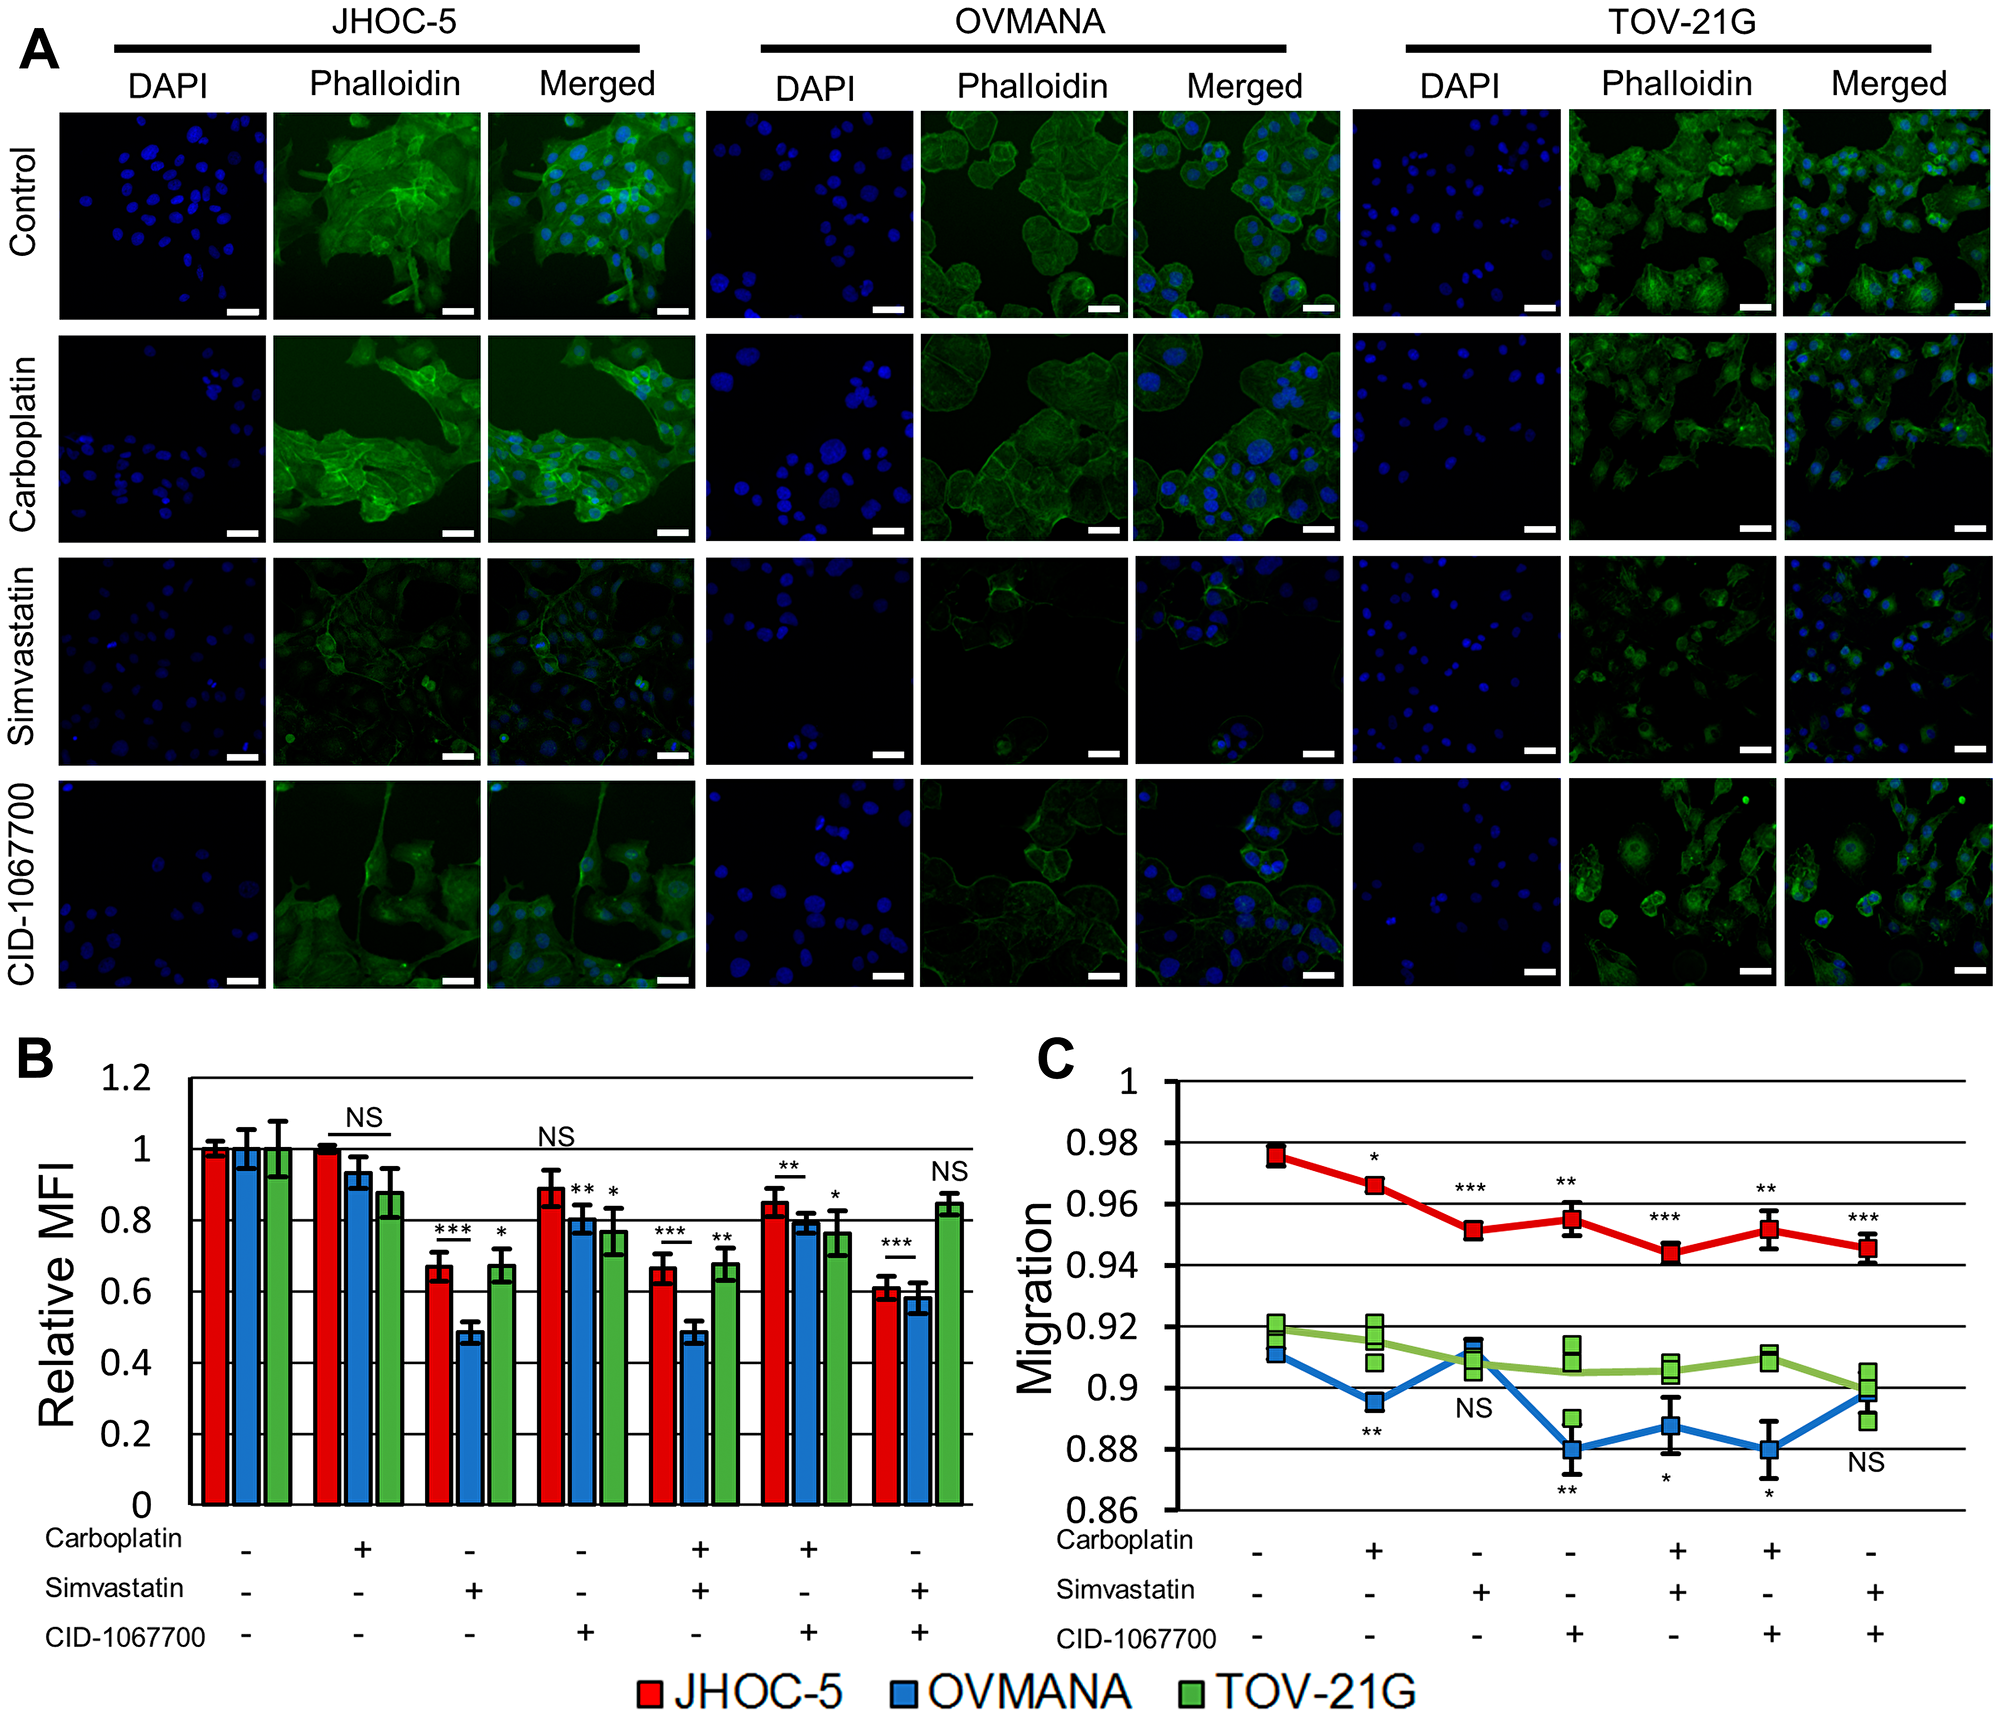 Effect of treatments upon cytoskeletal integrity and migration in JHOC-5, OVMANA and TOV-21G cell lines.